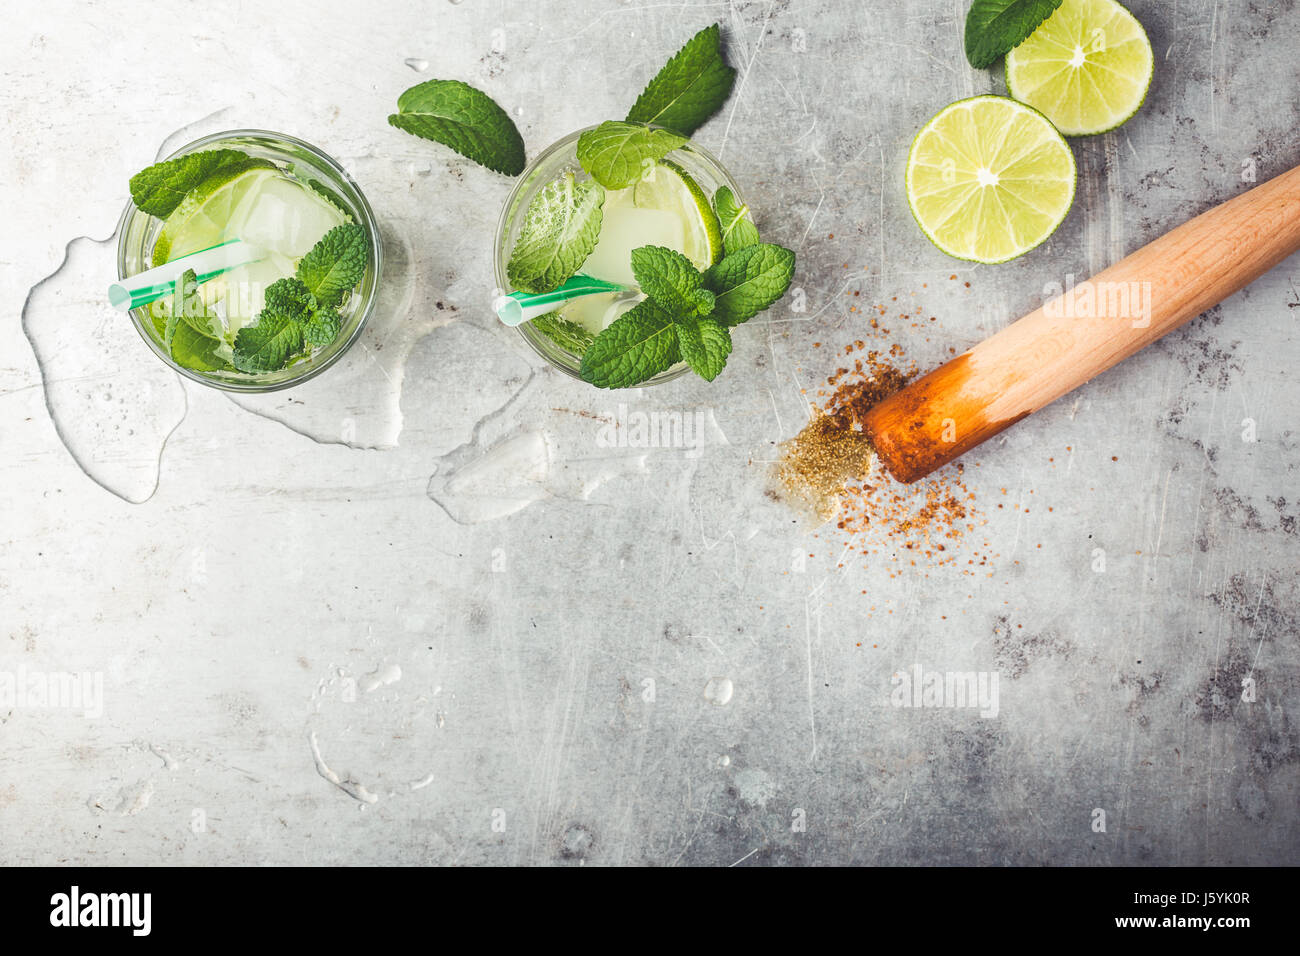 Mojito cocktail on light gray background with copy space for recipe or text viewed from above - Stock Image